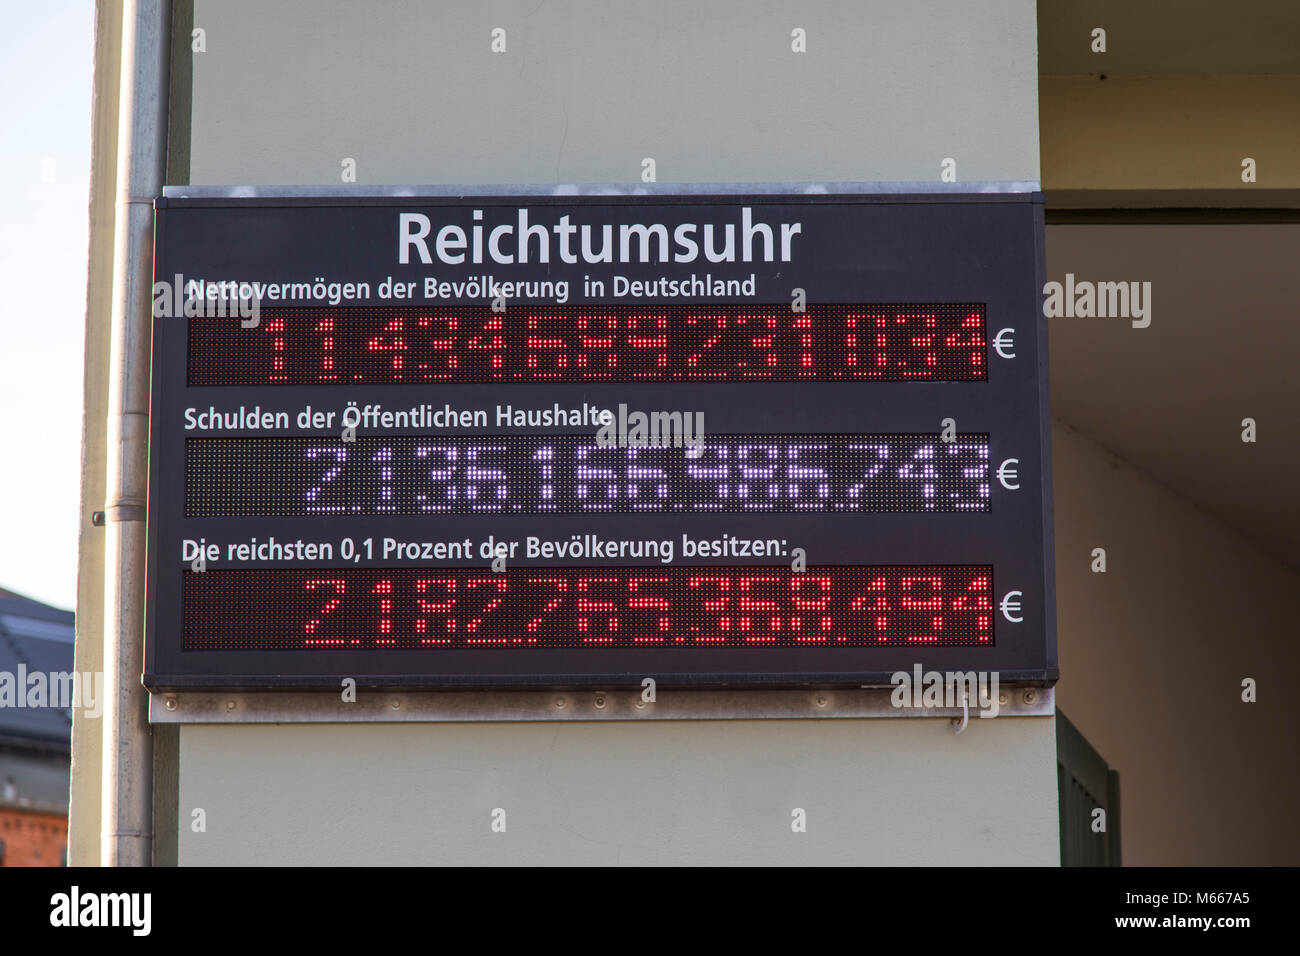 Berlin, wealth clock, net wealth, debt, public budgets, wealth, poverty, euro, counting, numbers, digits, ad, - Stock Image